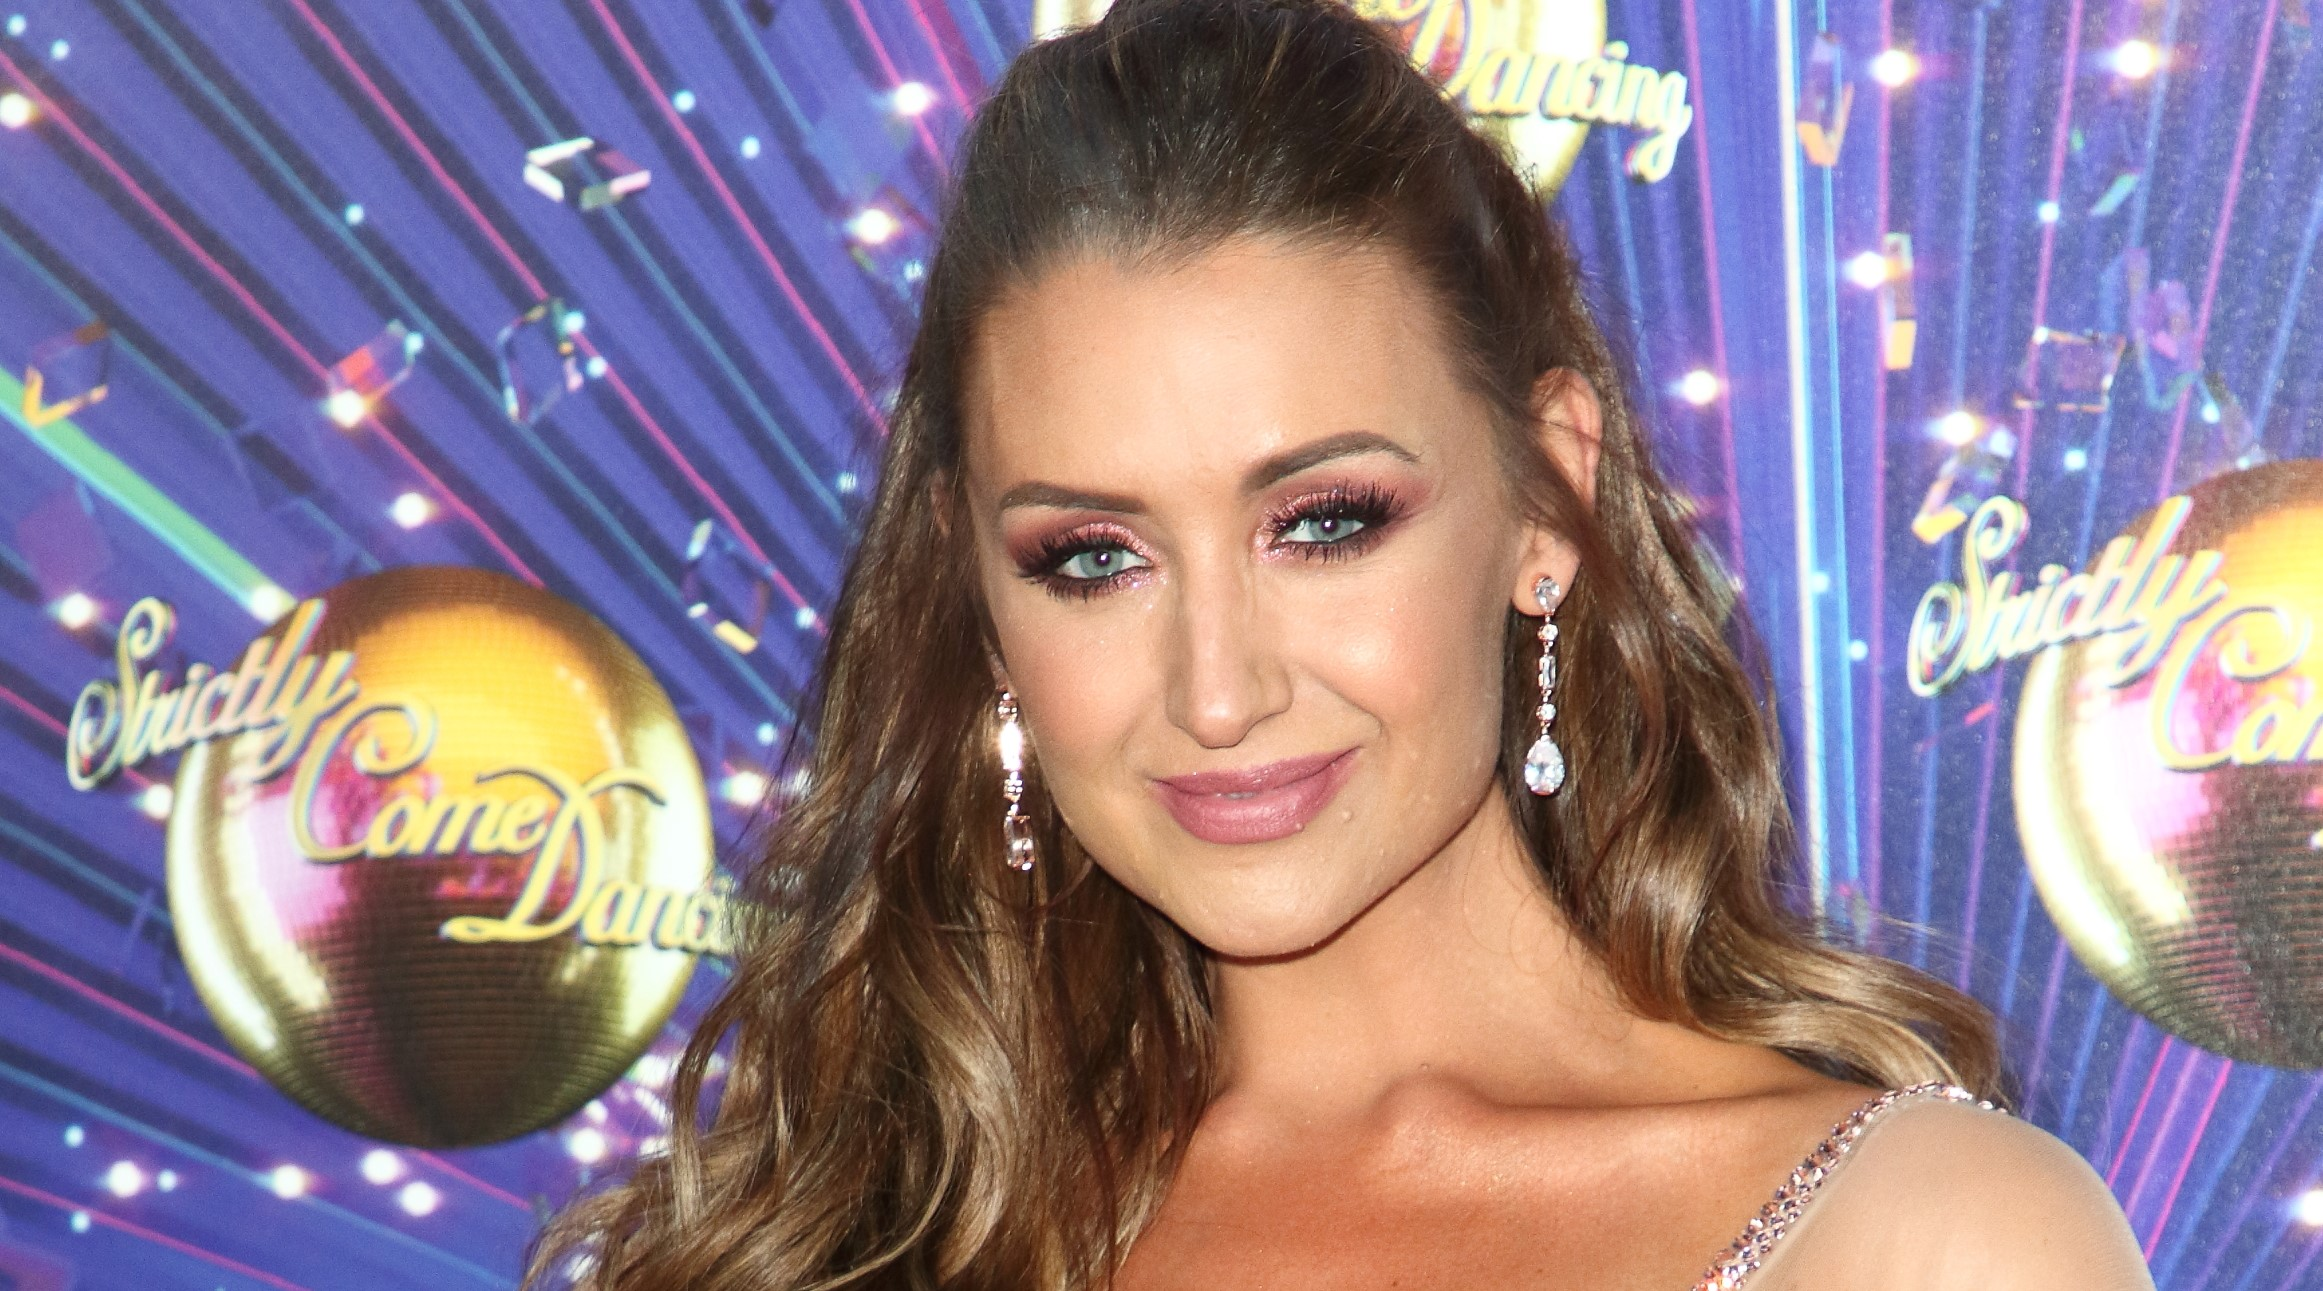 Strictly's Catherine Tyldesley troops through rehearsals despite illness this week